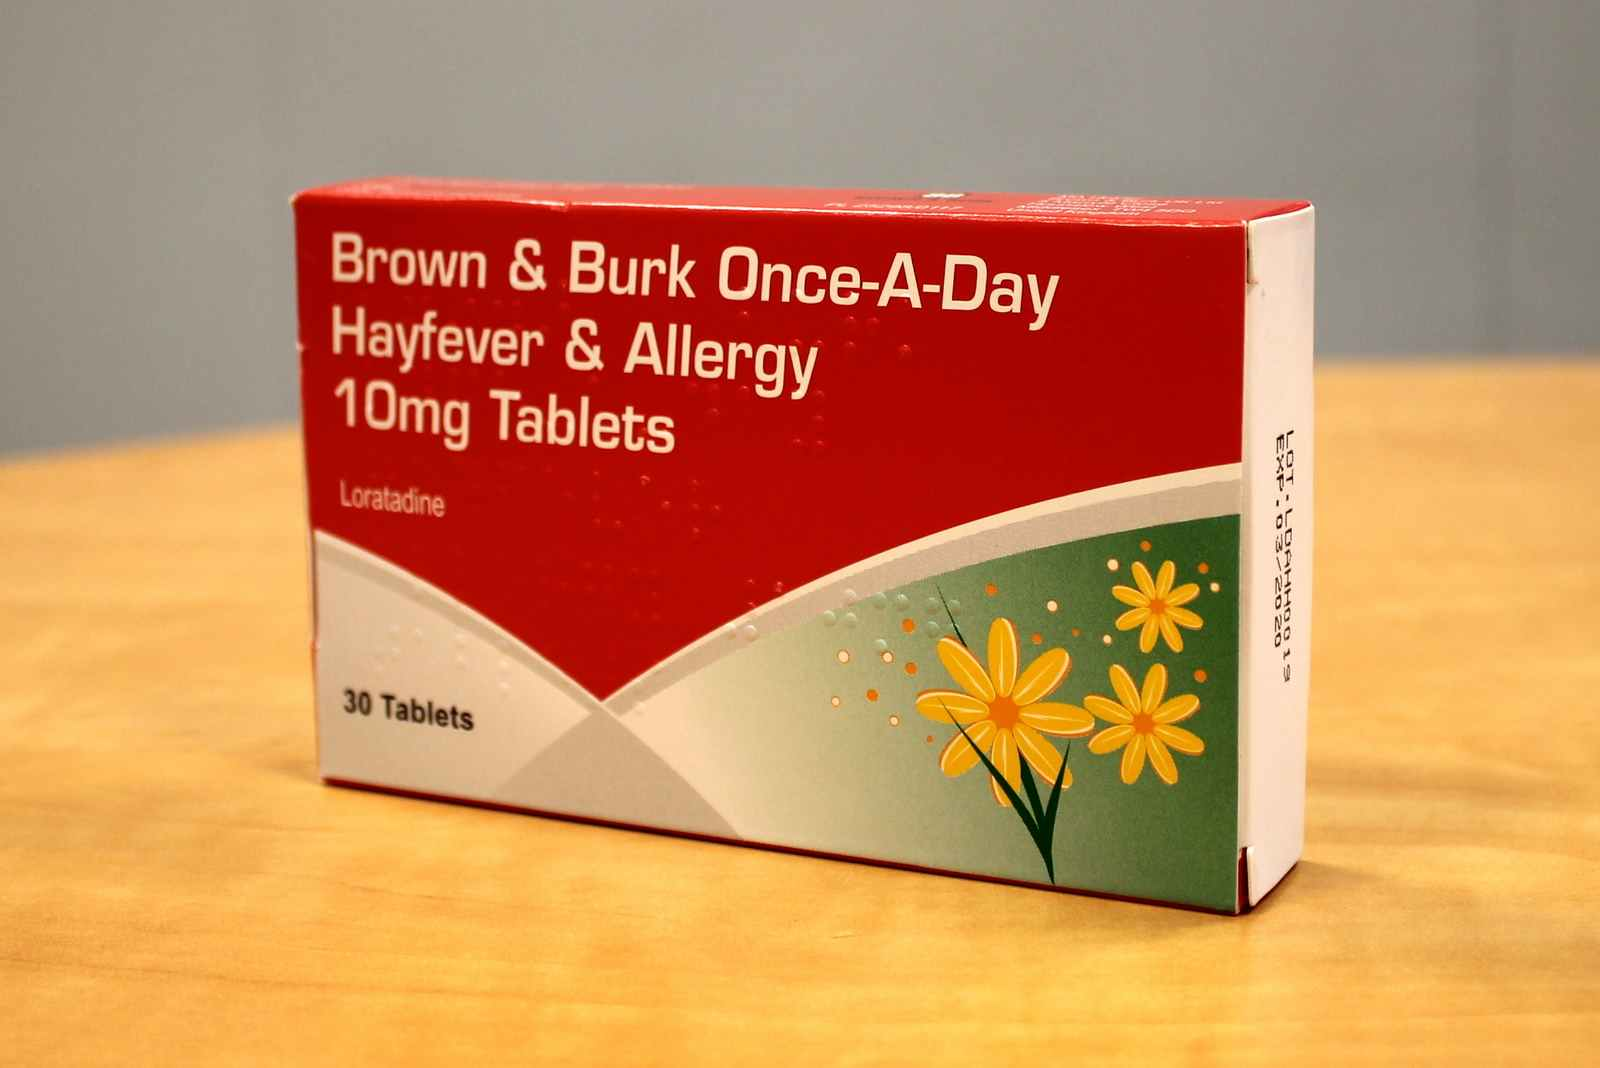 Once -A-Day Hayfever & Allergy 10 mg Tablets - B&B